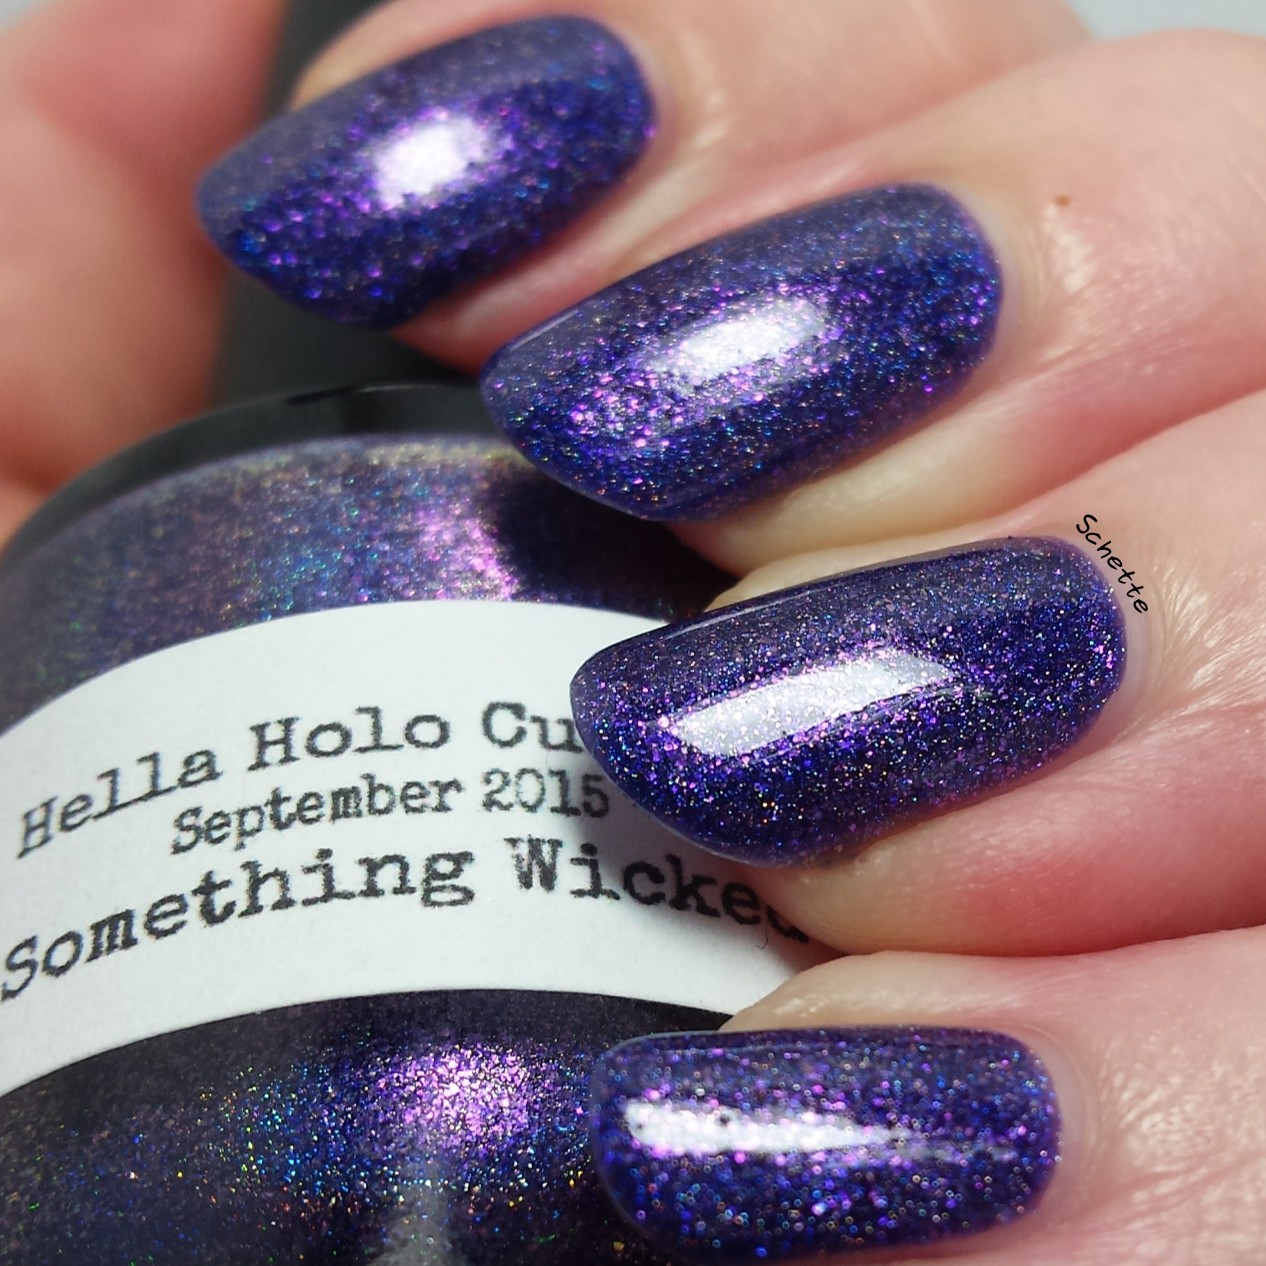 Vapid Lacquer - Somehting wicked